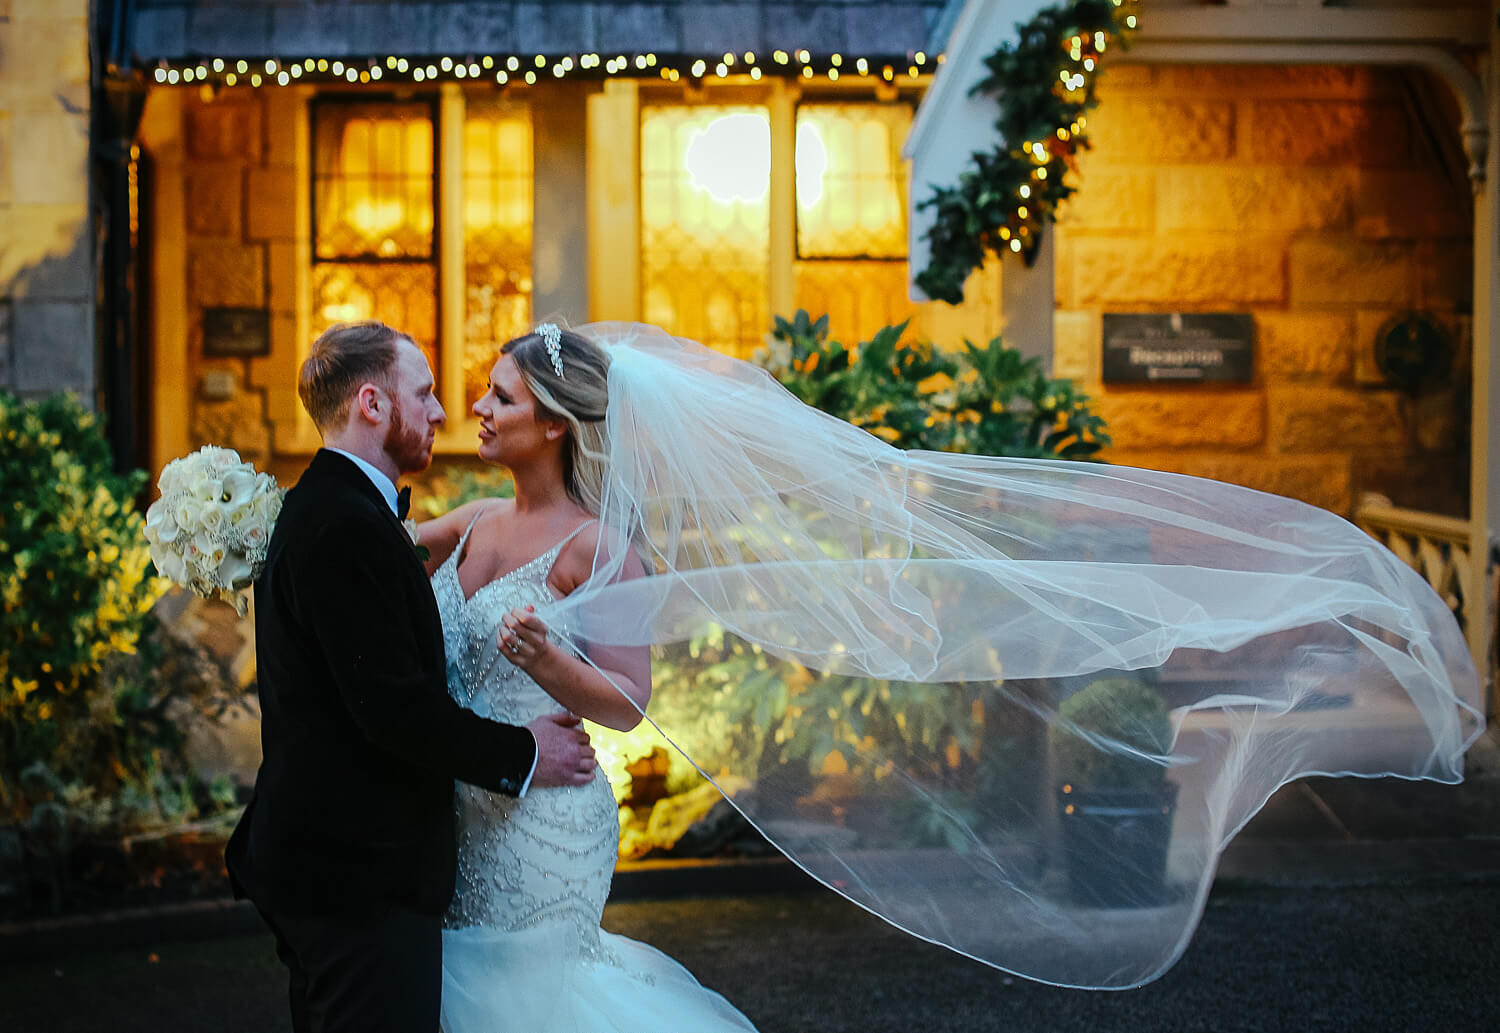 Bride and groom in front of West Tower at night with veil blowing